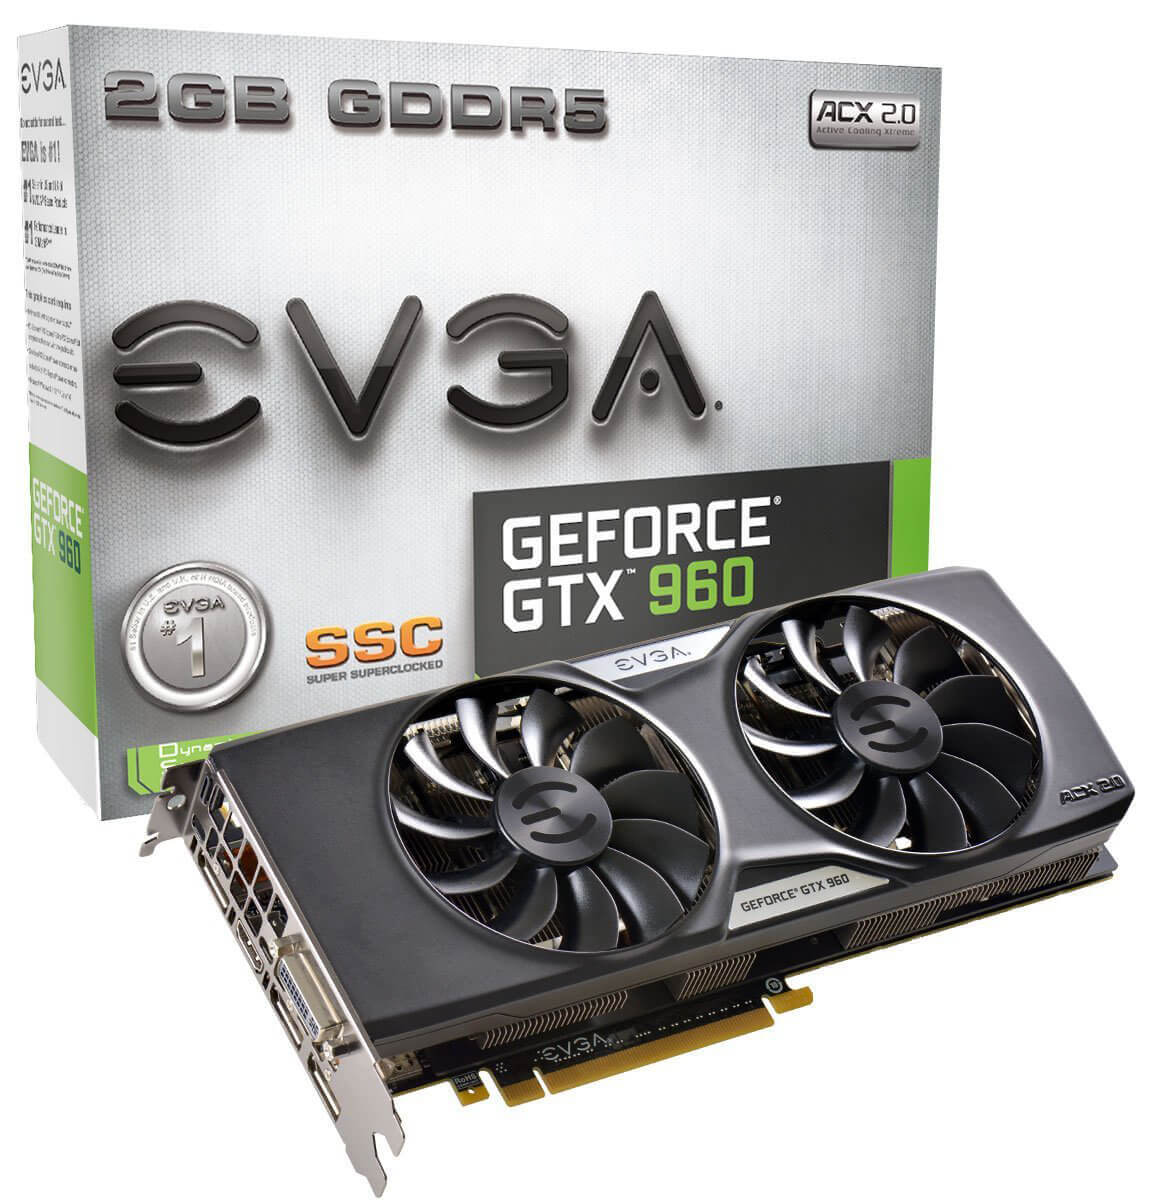 EVGA GeForce GTX 960 SSC Review - Best Graphics Card under 200 Dollars